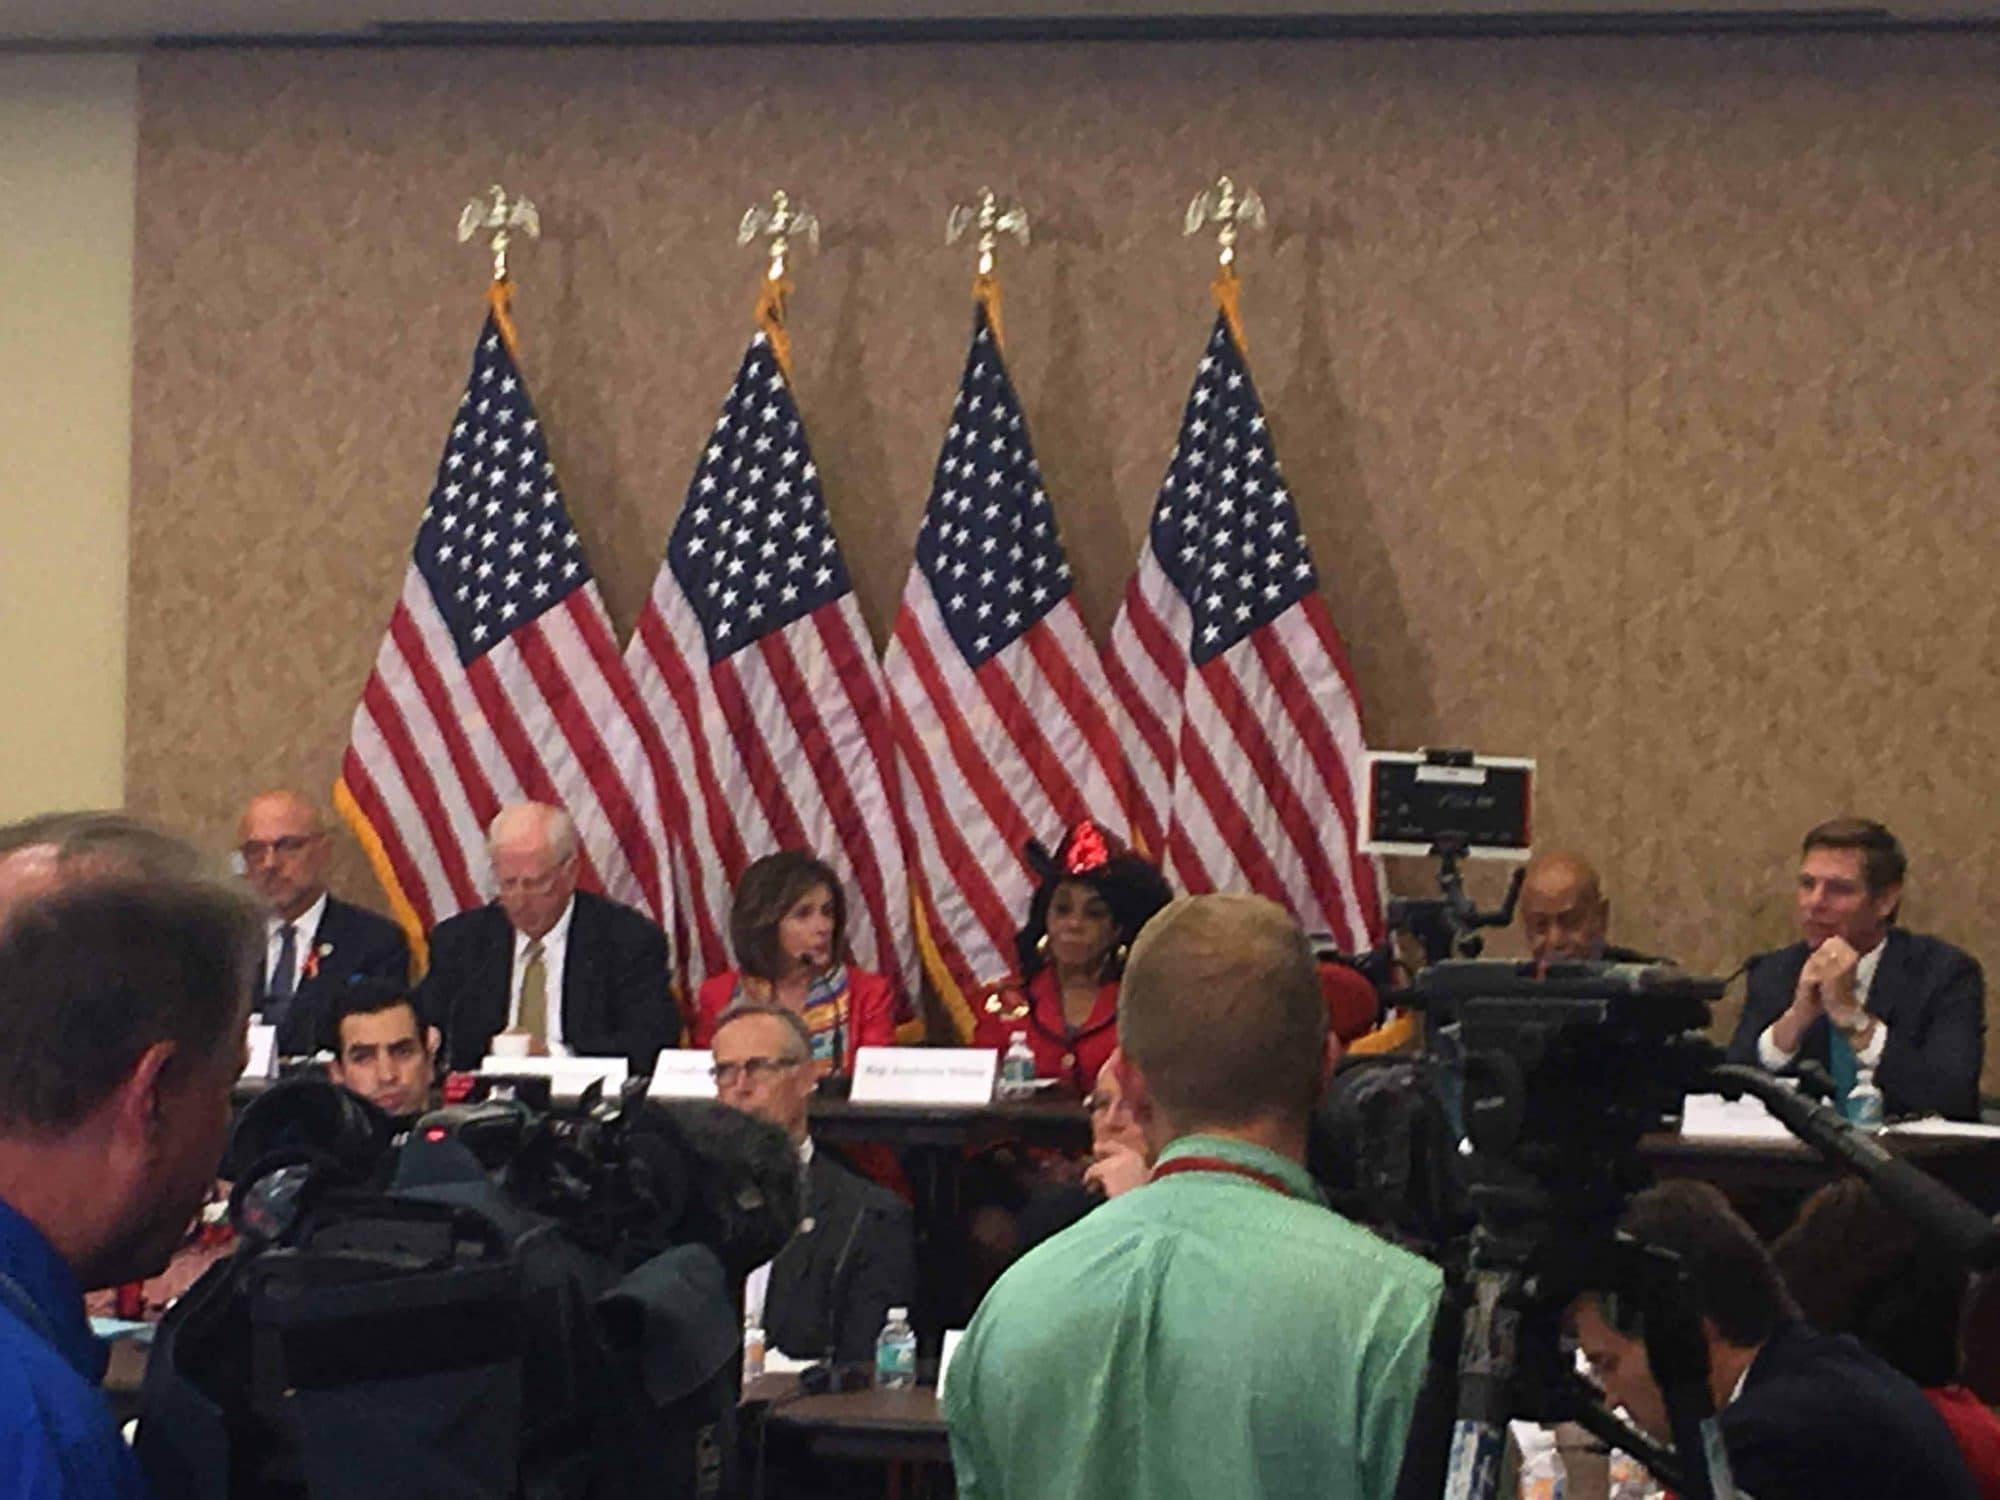 Congressional Hearing at the US Capitol